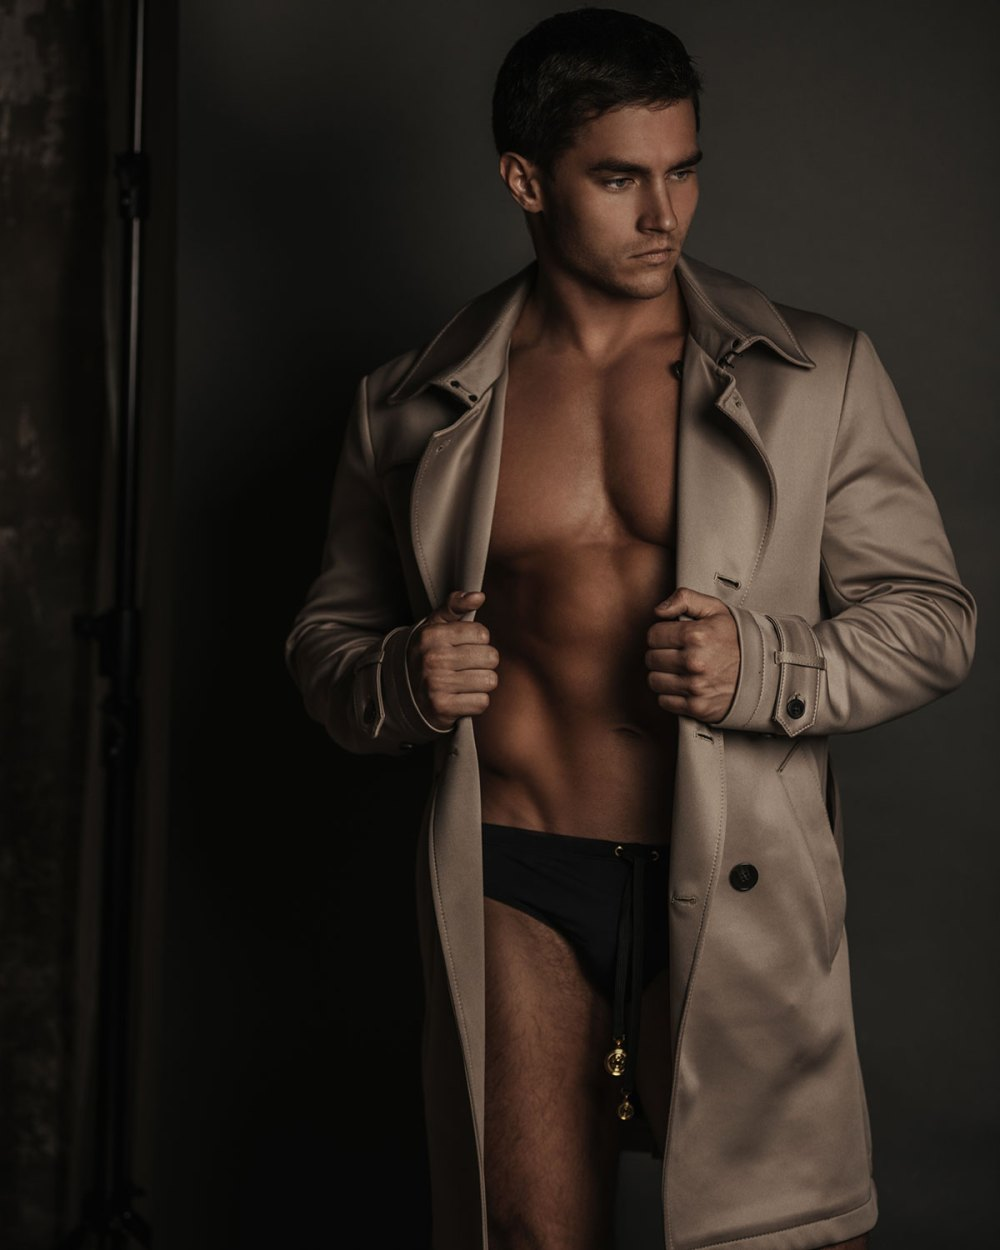 anatoly-goncharov-by-serge-lee